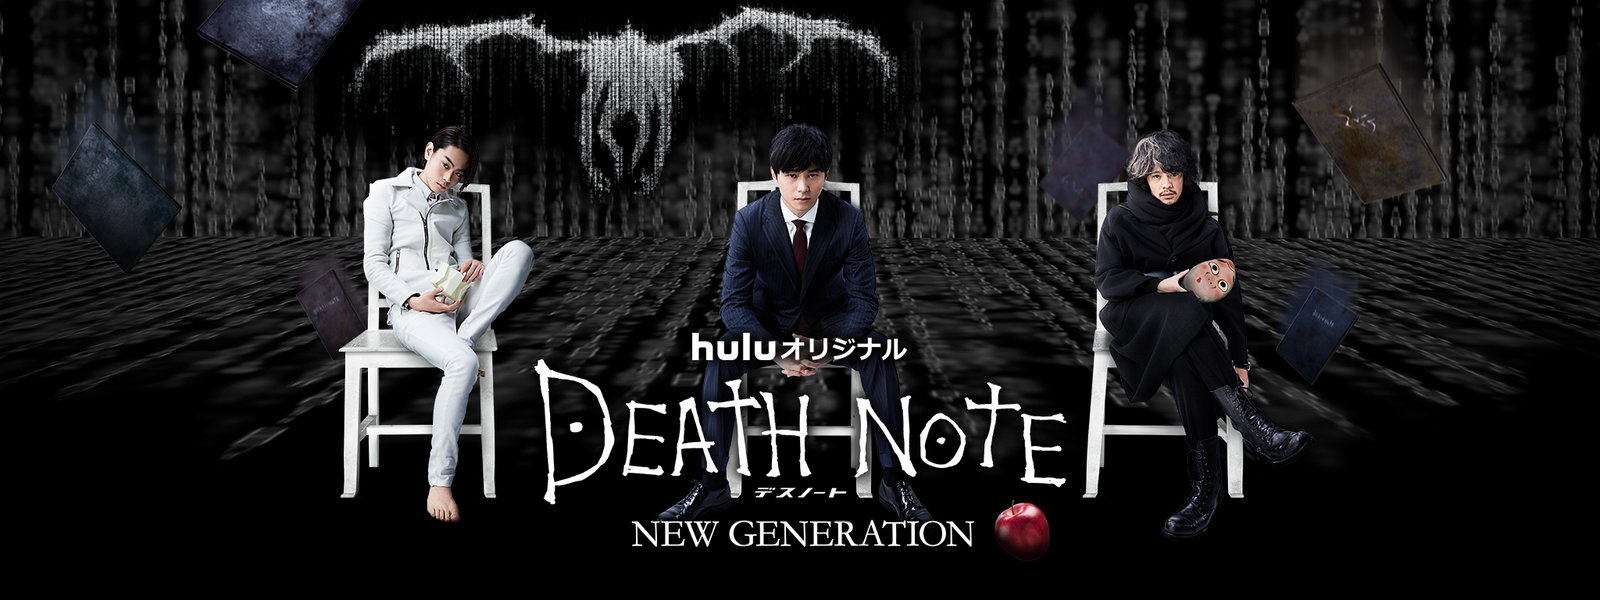 Photo Death Note: New Generation